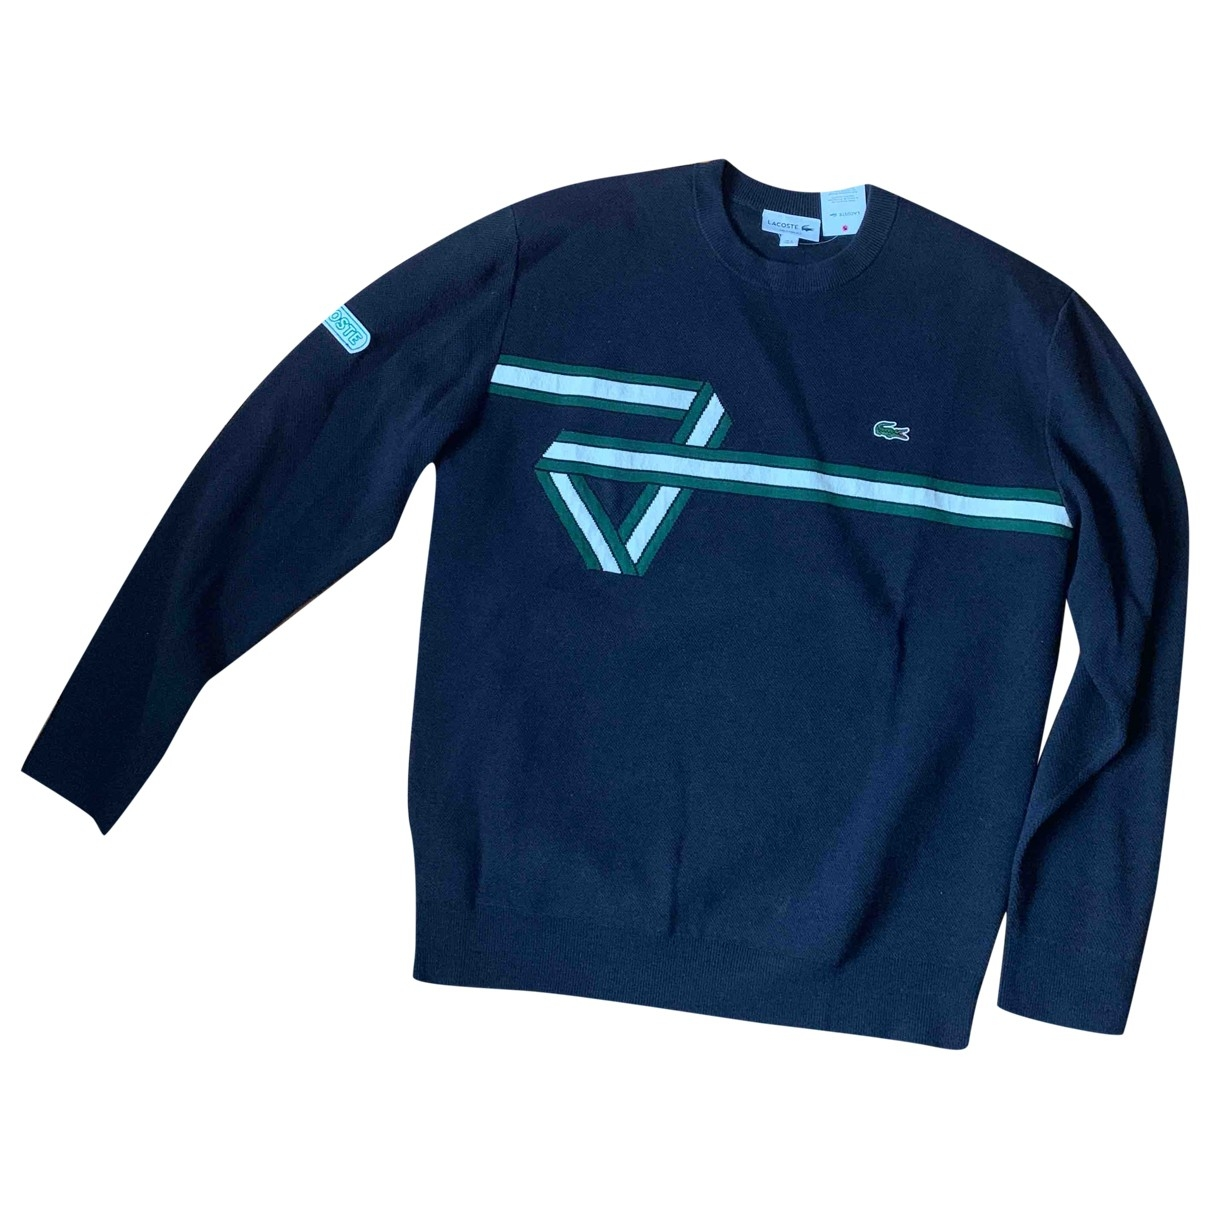 Lacoste \N Blue Cotton Knitwear & Sweatshirts for Men M International